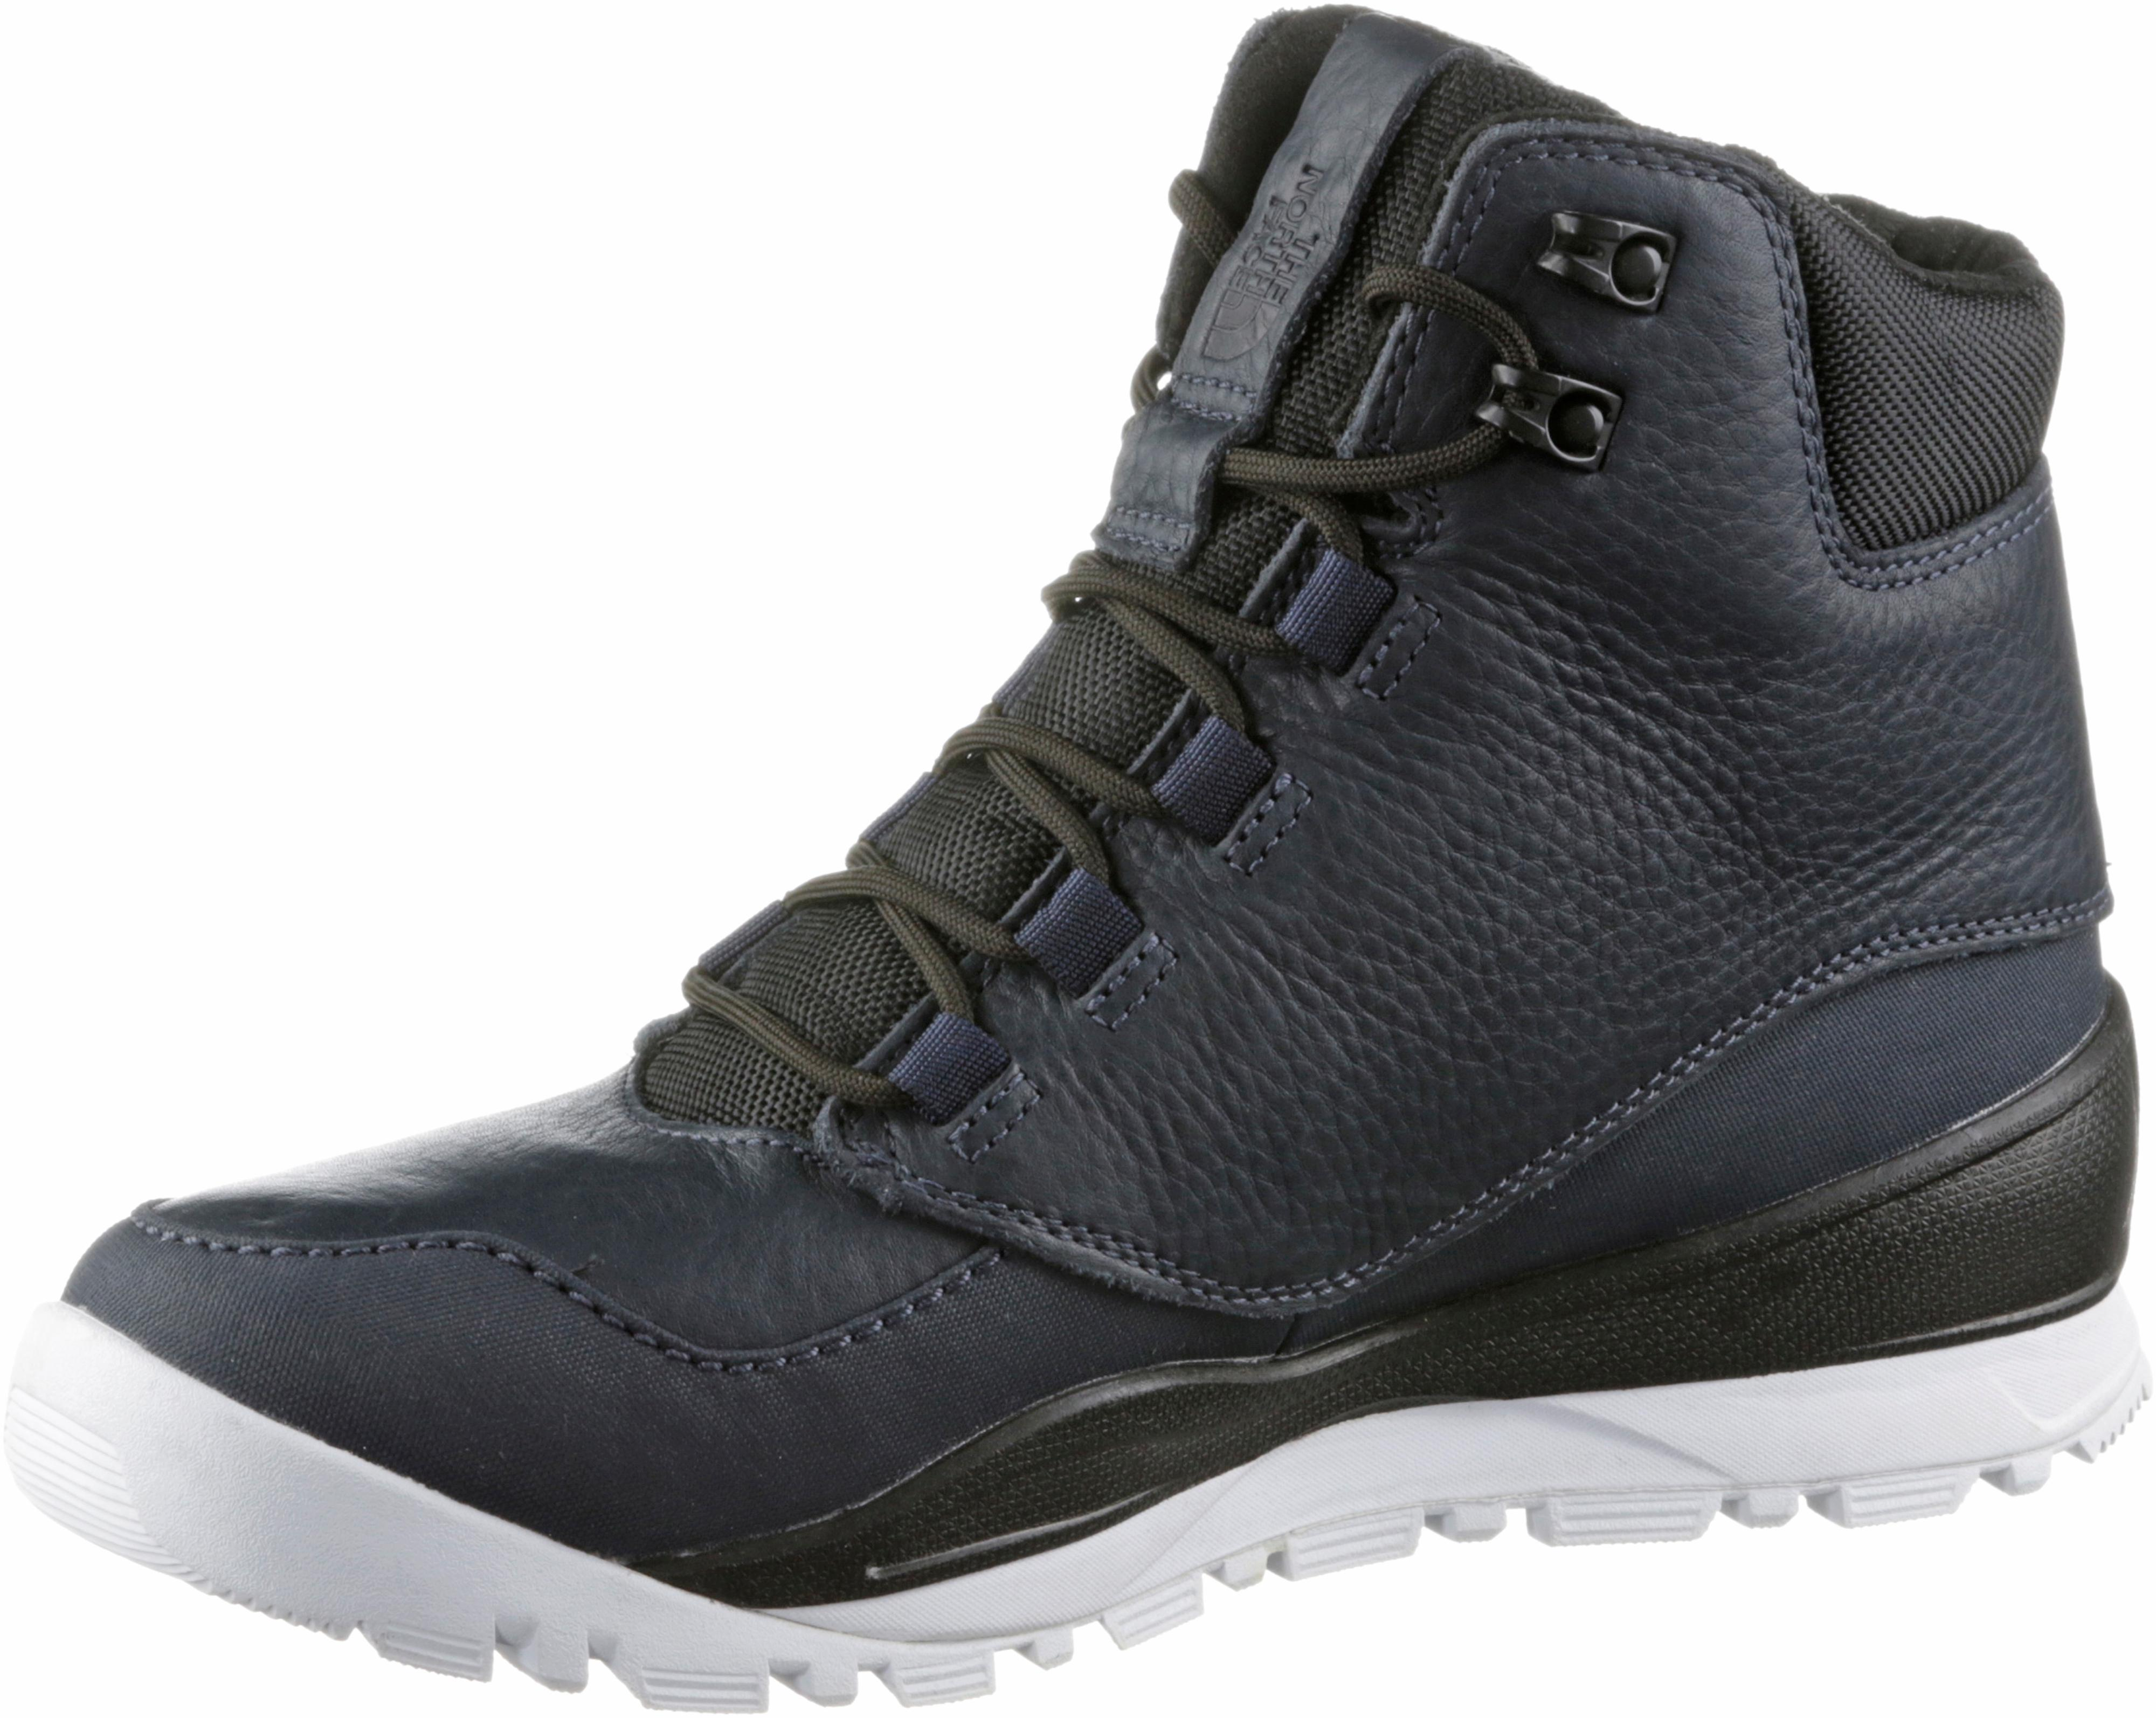 buy online e0bef 83958 The North Face Edgewood 7